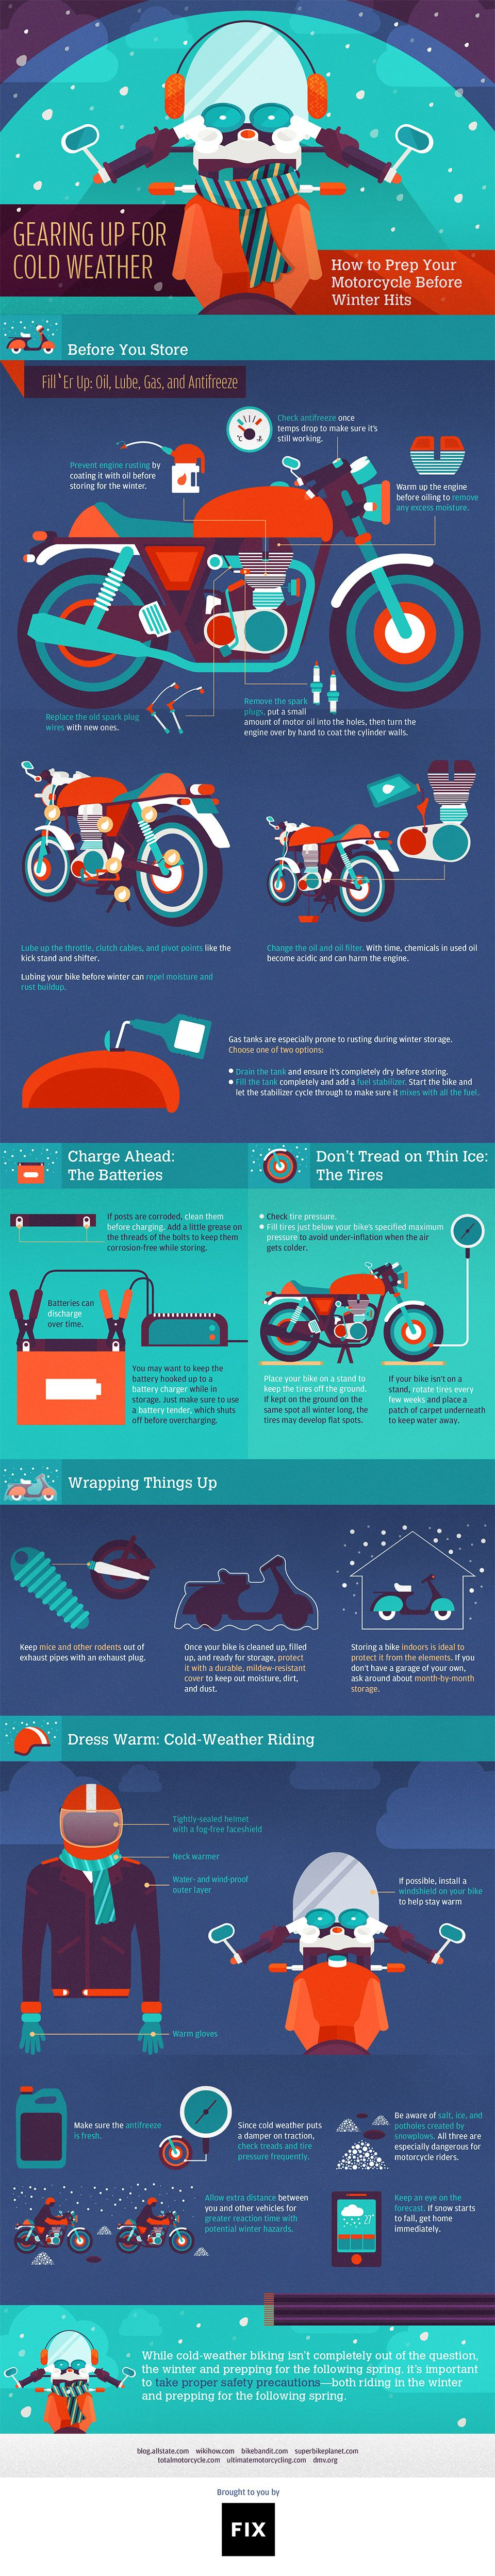 Whether you plan on riding your bike in the cold weather, or putting it away in storage, this graphic explains all the preparations you should handle before the cold creeps up on you.